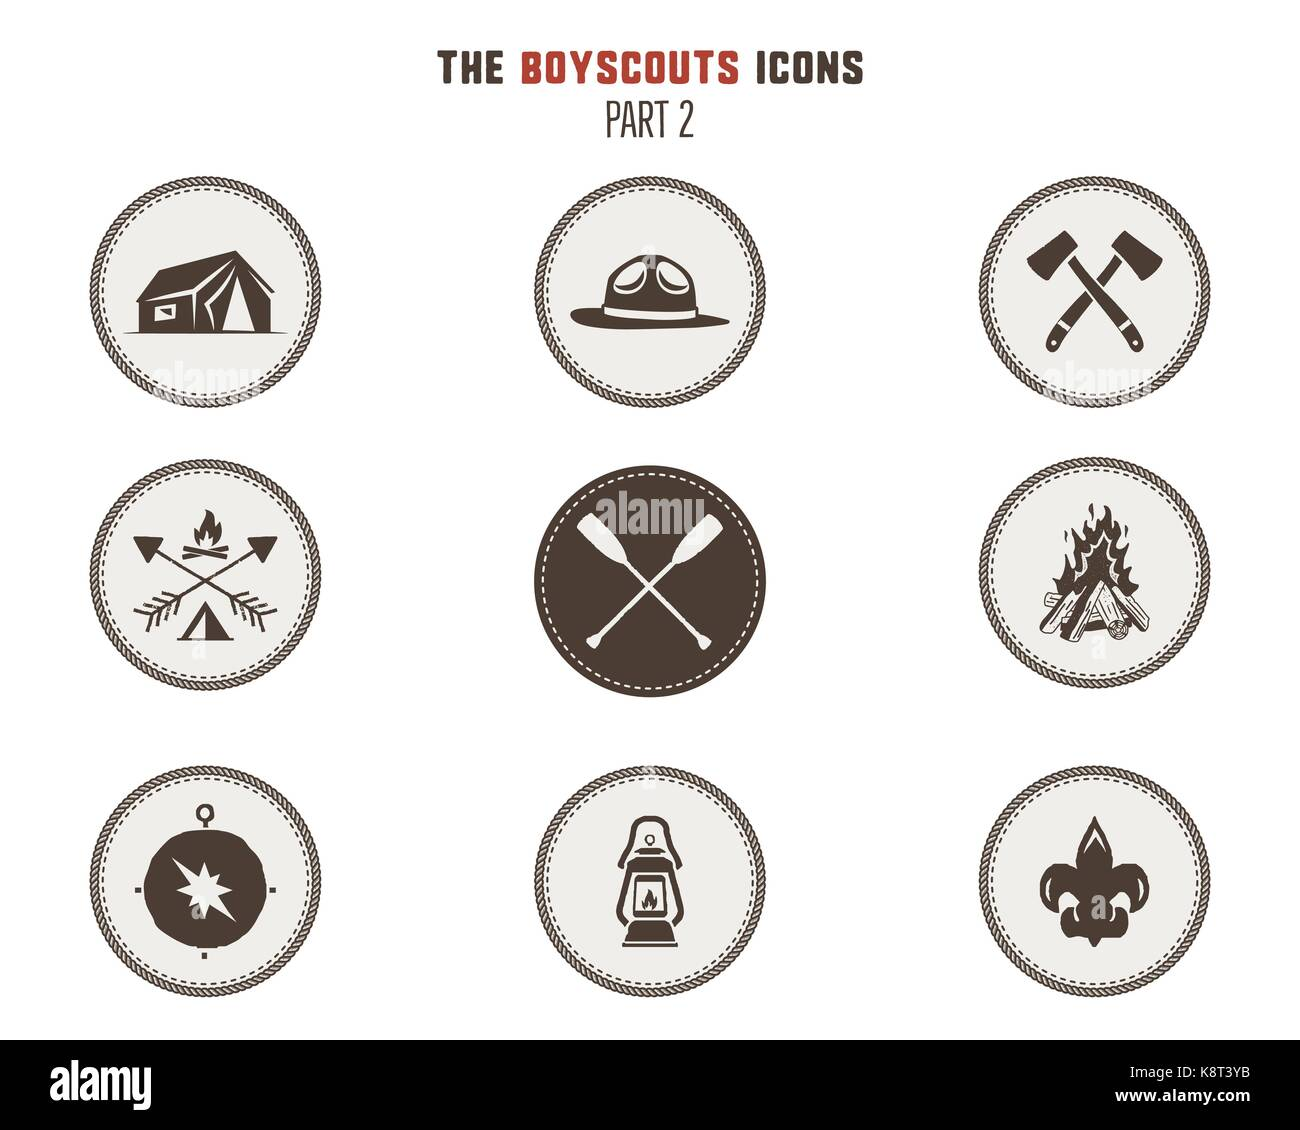 Camping stickers tent axe campfire compass and others stock vector illustration isolated on white background part 2